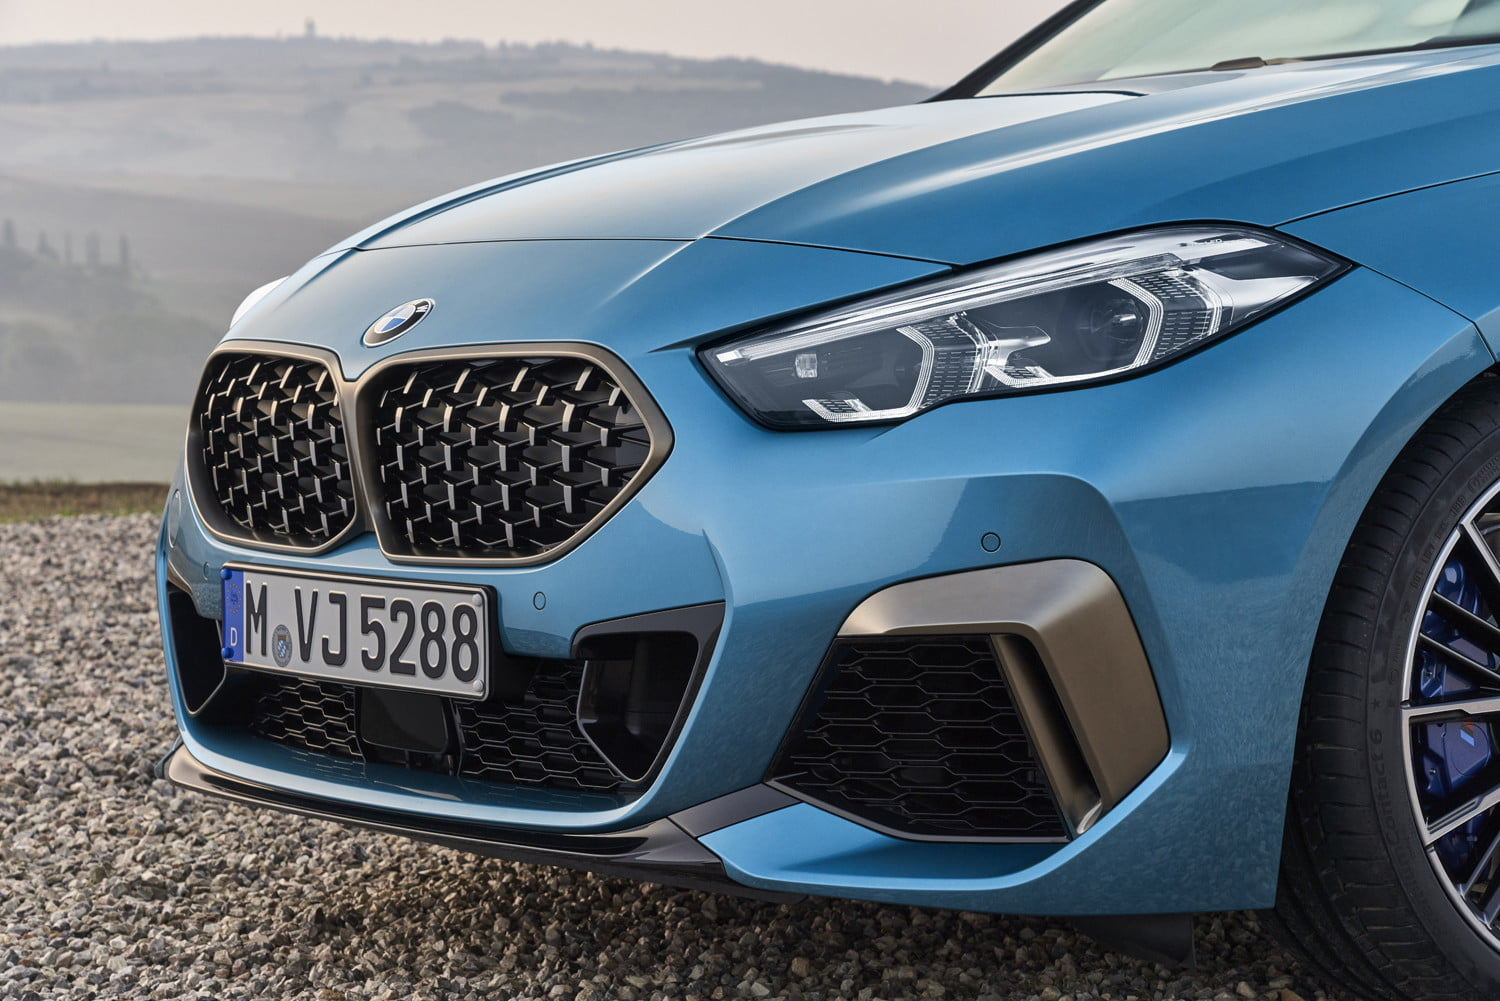 2020 bmw 228i m235i gran coupe unveiled as entry level sedans 2 series gc off 8